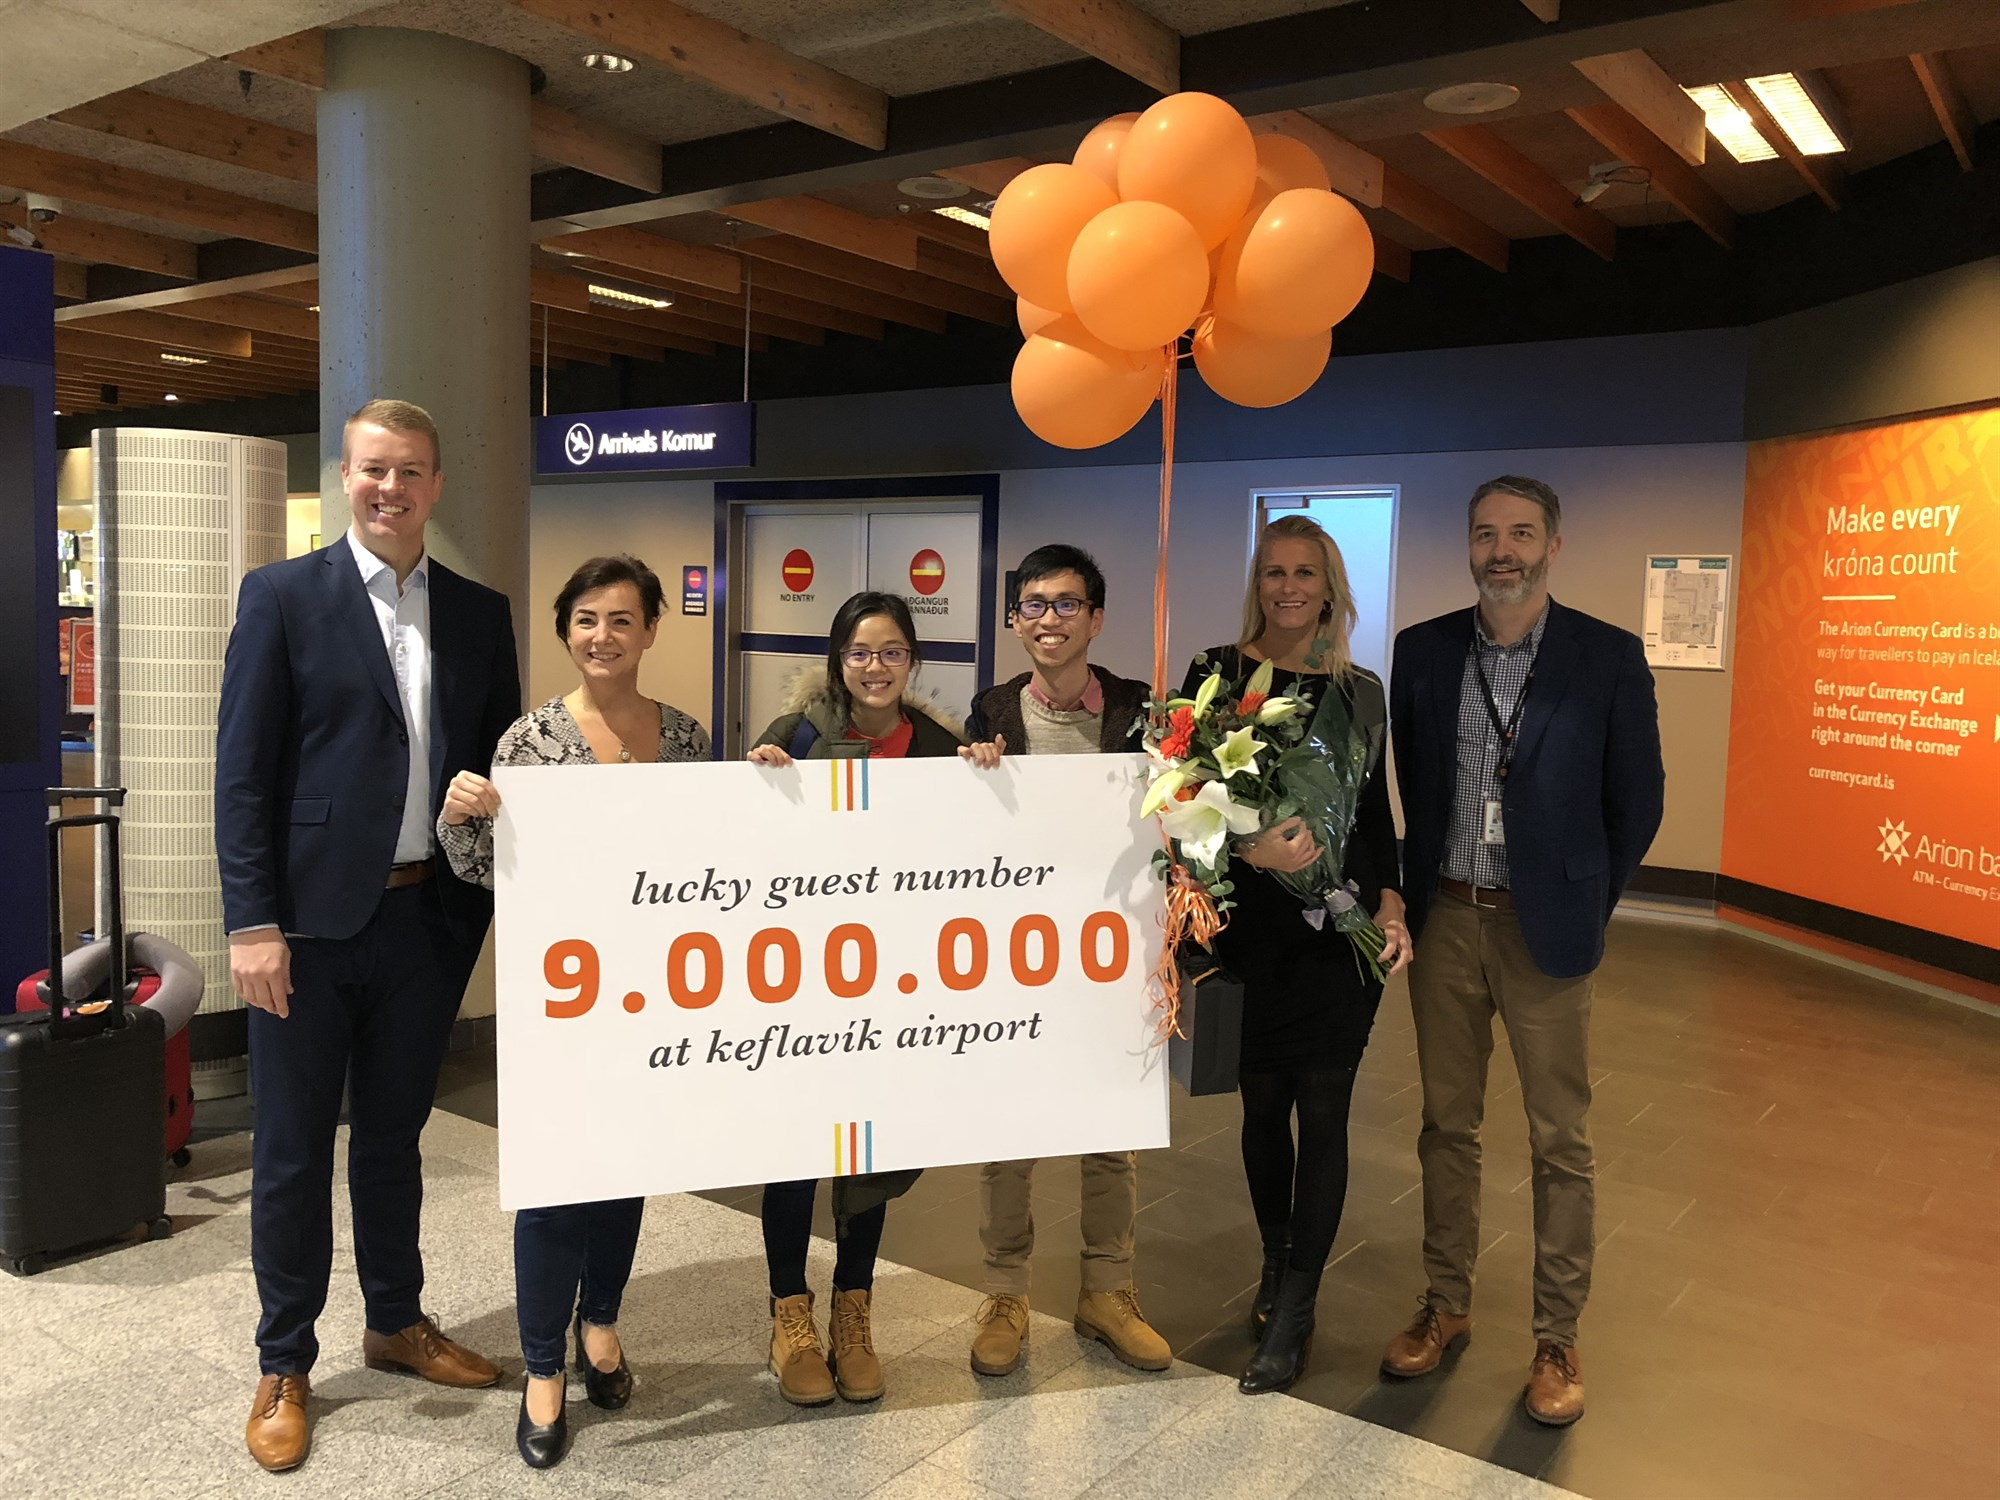 THE NINE-MILLIONTH PASSENGER PASSED THROUGH KEFLAVÍK AIRPORT THIS YEAR